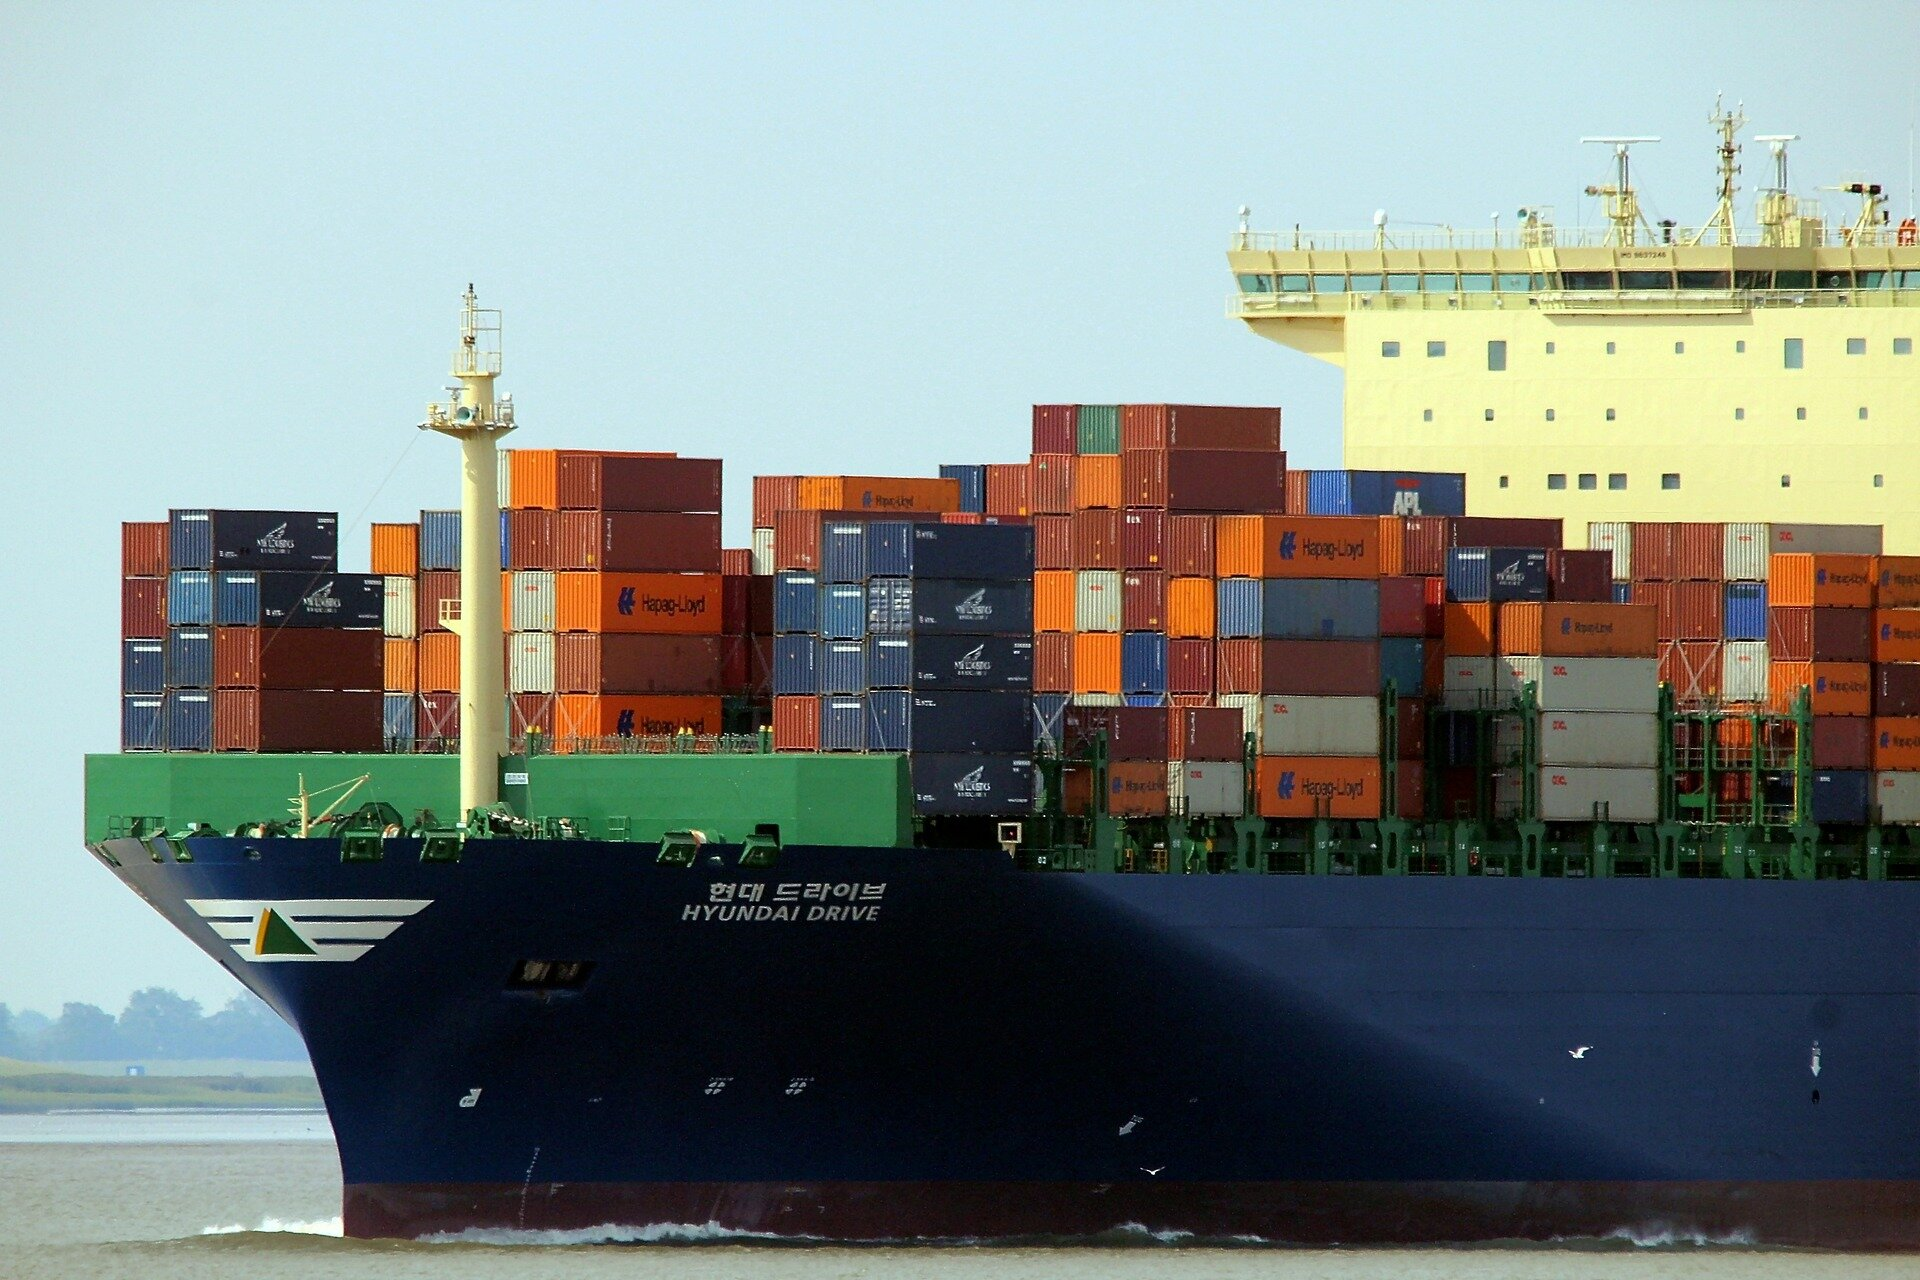 Biofuel for ships: Diesel and gasoline sourced from renewables